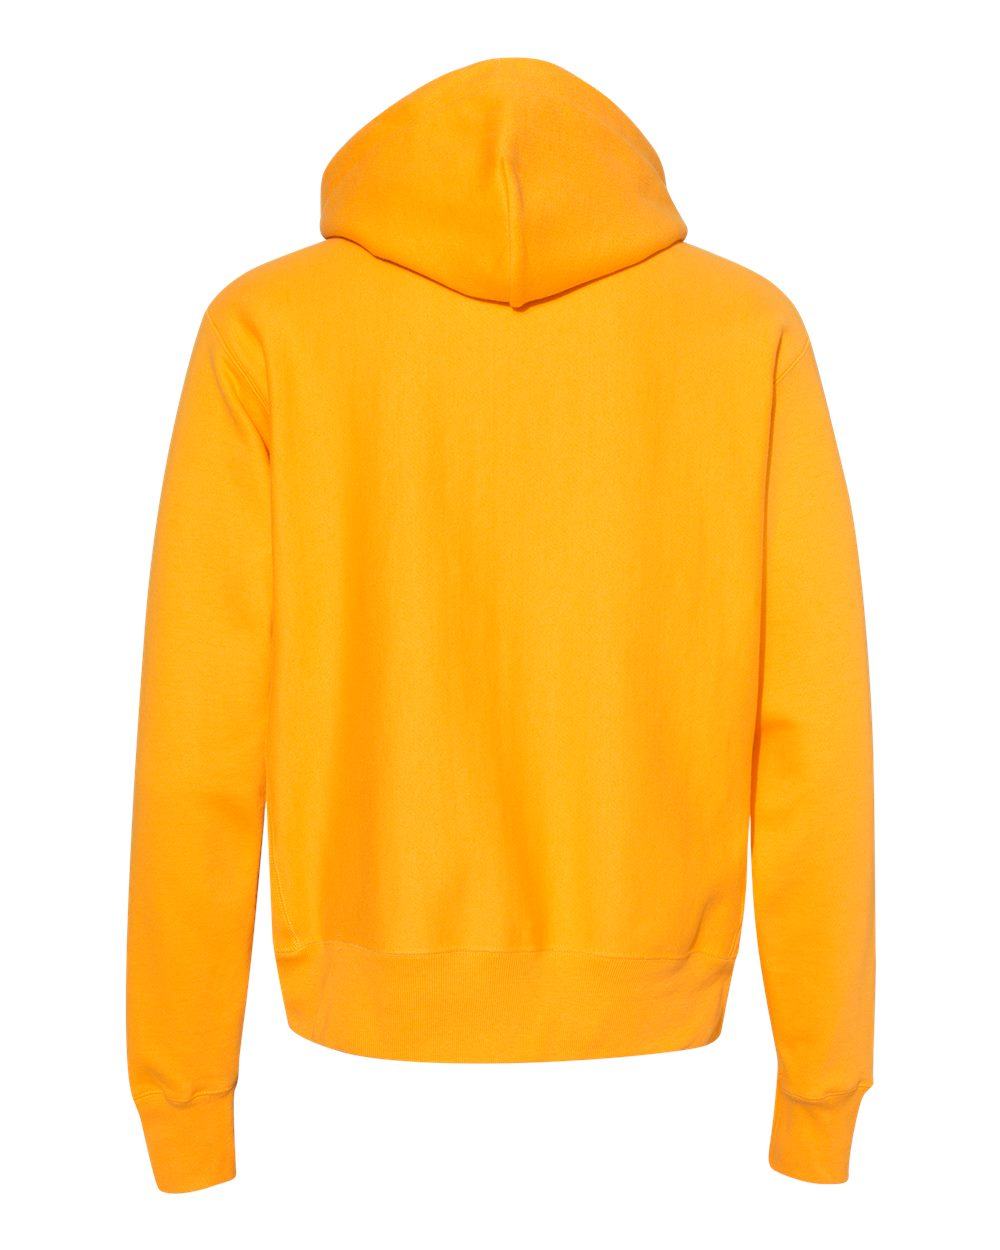 Champion-Mens-Reverse-Weave-Hooded-Pullover-Sweatshirt-S101-up-to-3XL thumbnail 13